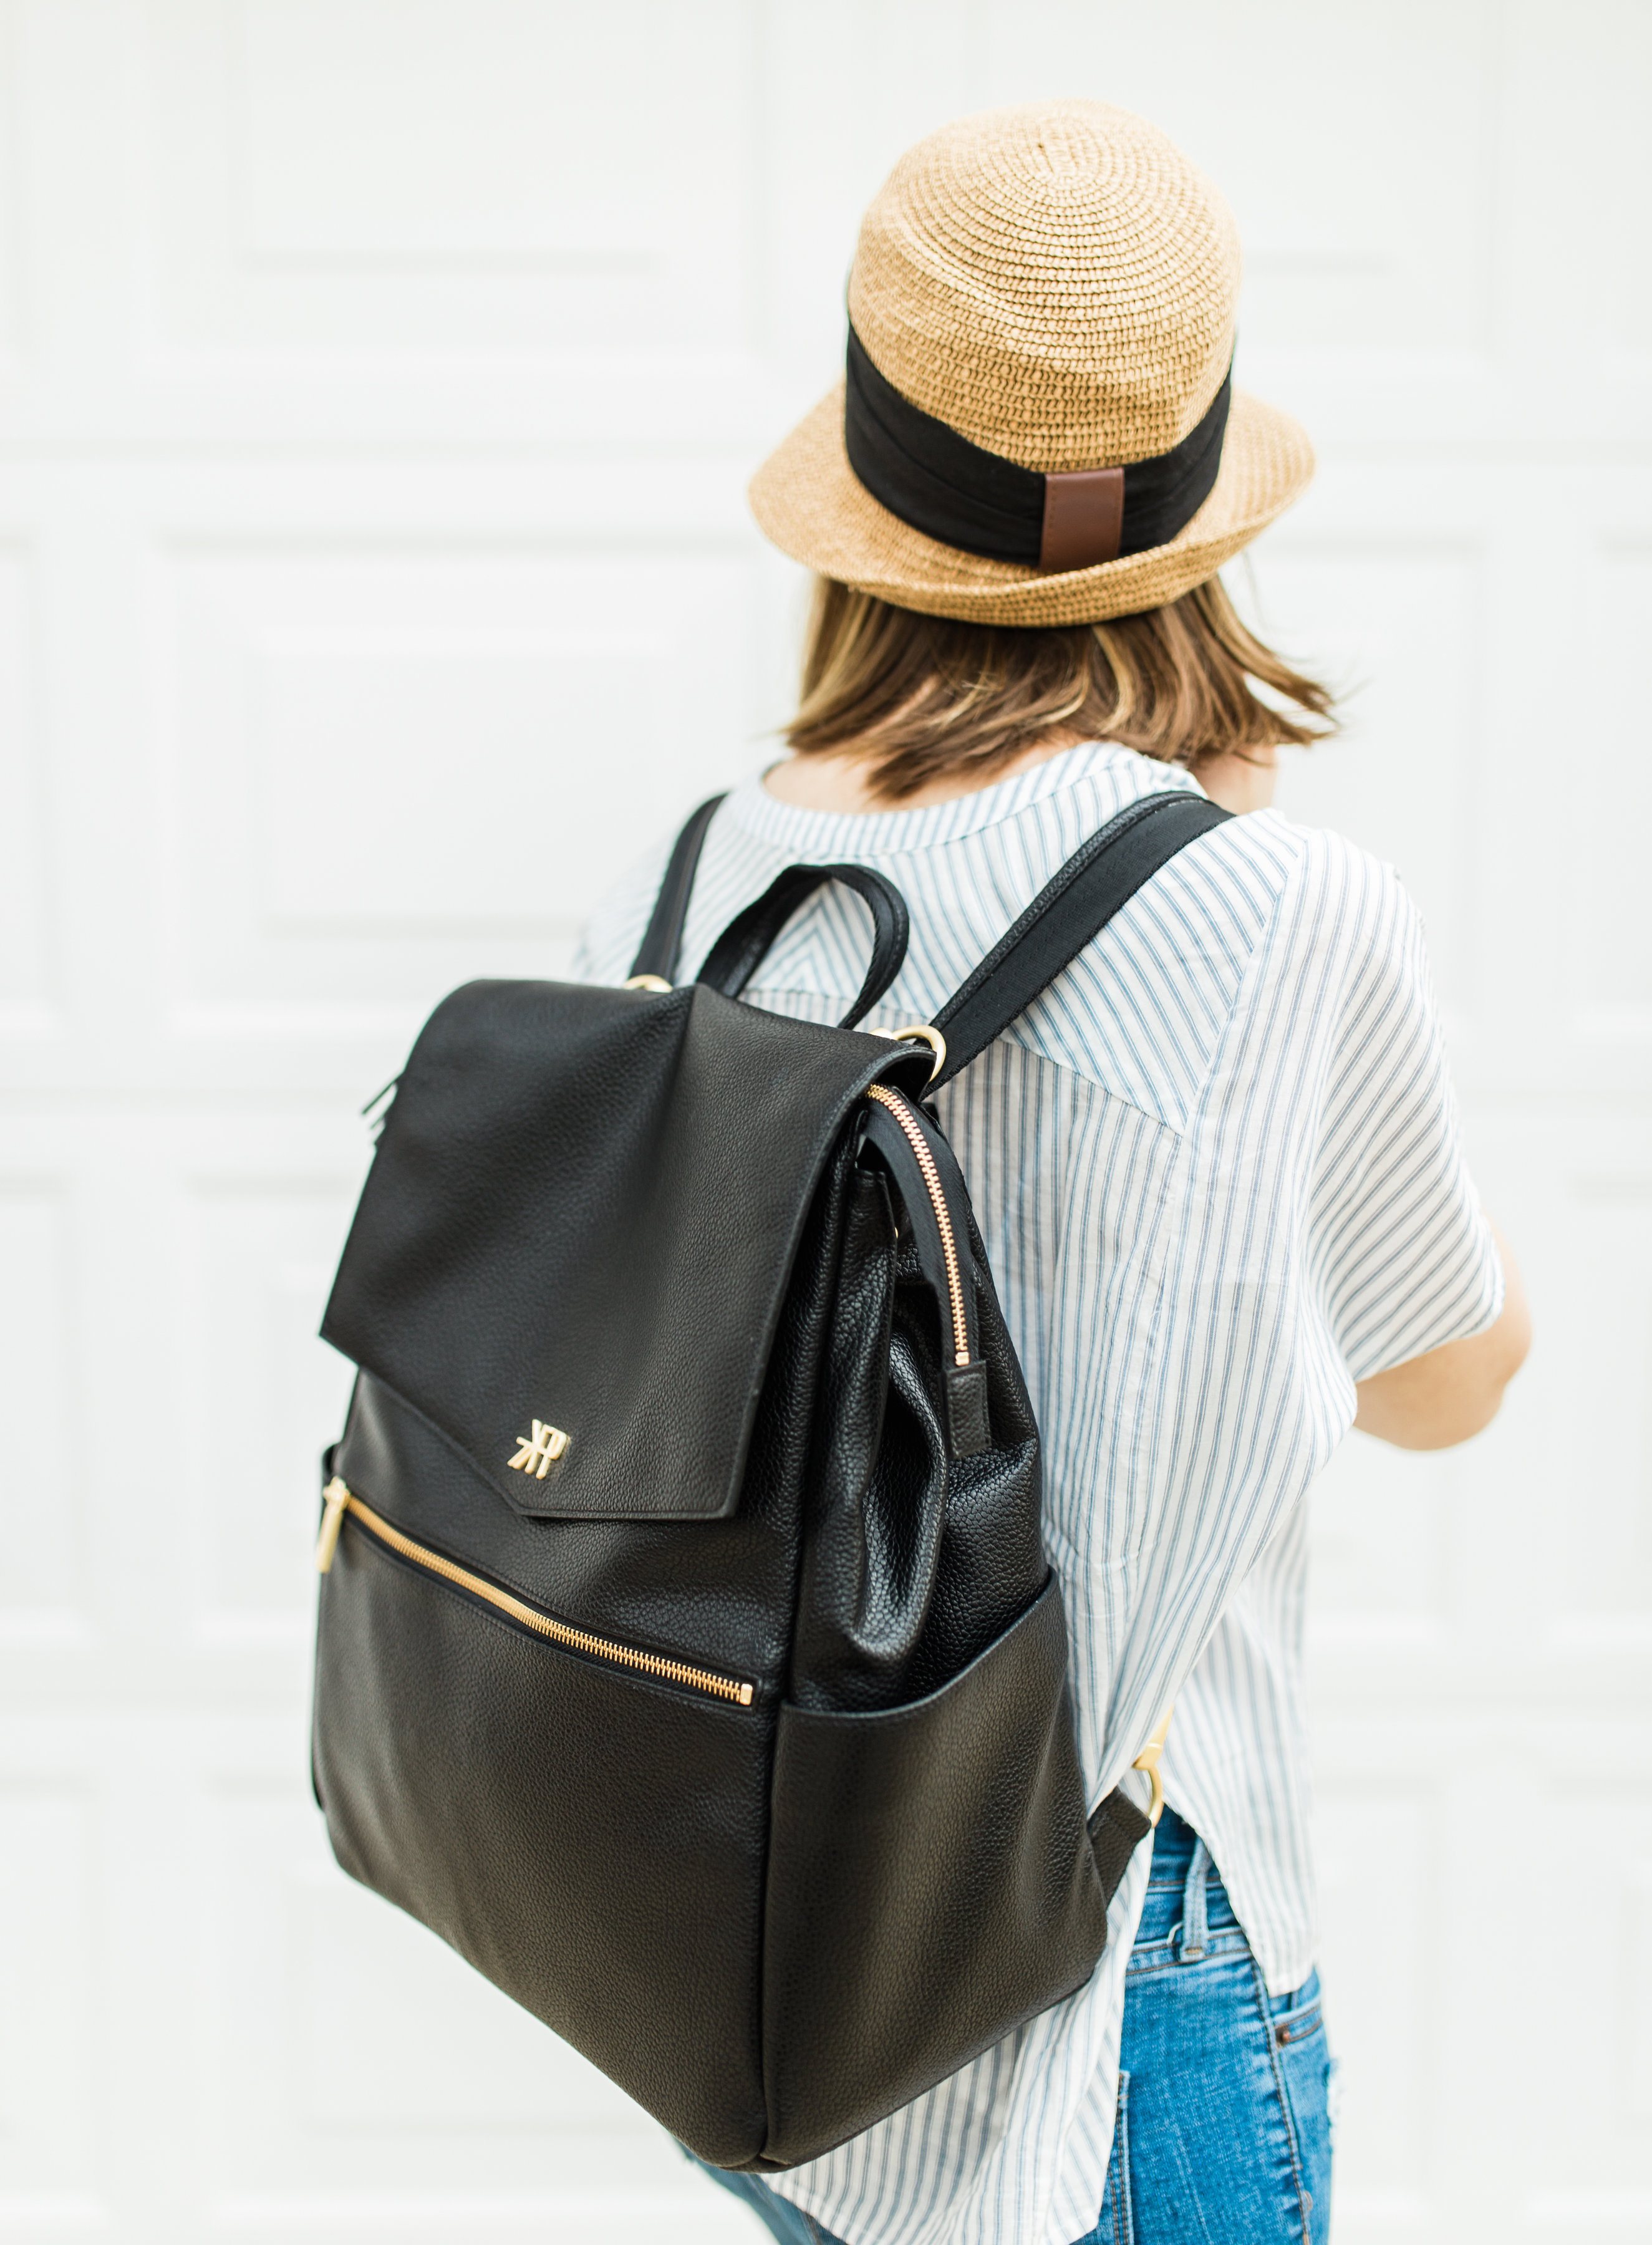 An honest review of the Freshly Picked Diaper Bag as a mom of a toddler and a baby. (The Perfect Option for Stylish, On-the-Go Moms) | glitterinc.com | @glitterinc - Freshly Picked Diaper Bag review by popular North Carolina style blogger Glitter, Inc.